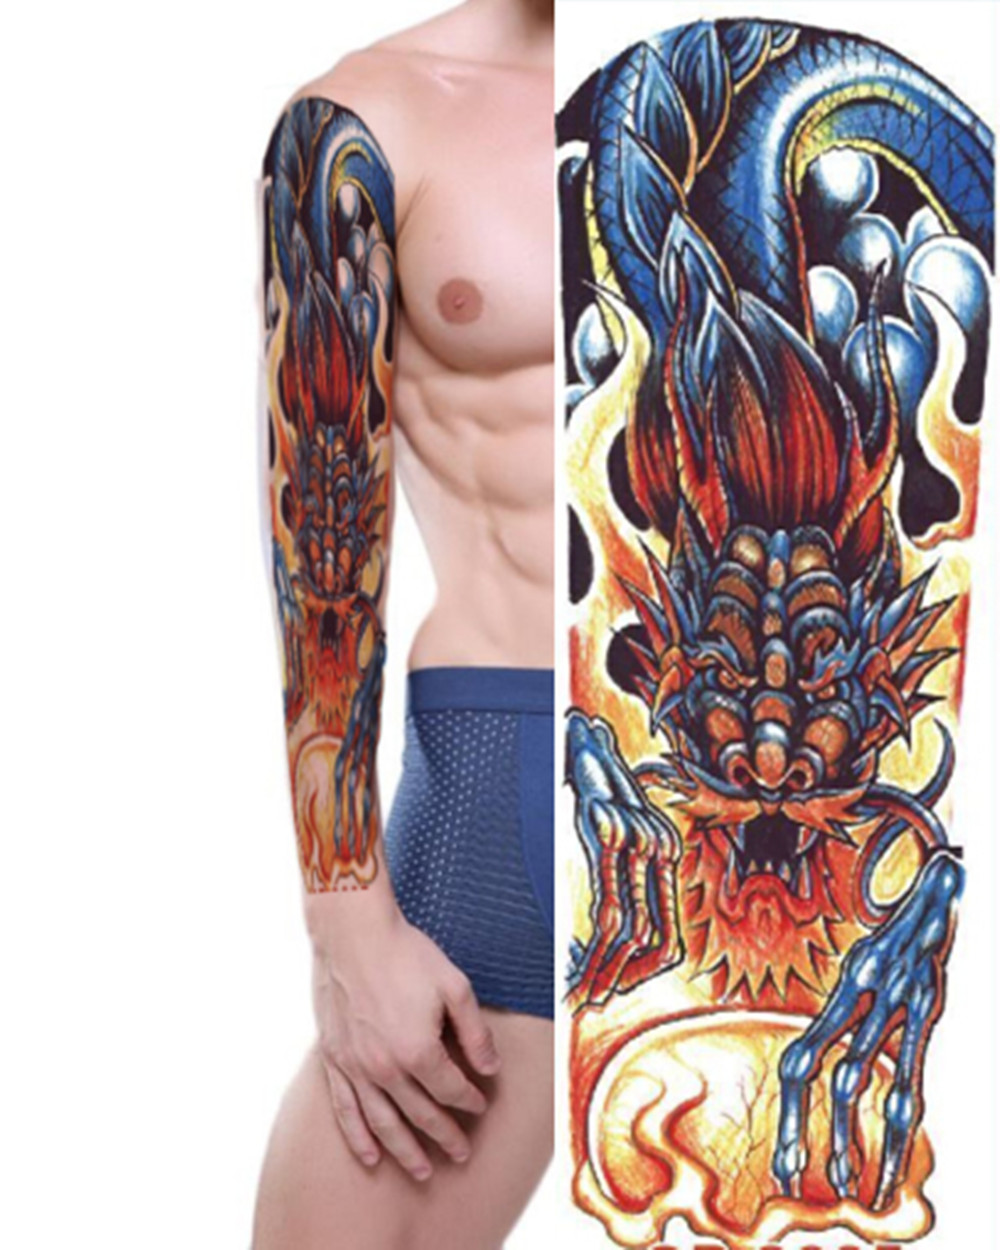 Plein Bras Autocollants De Tatouage Grand Dragon Fleur D Epaule Faux